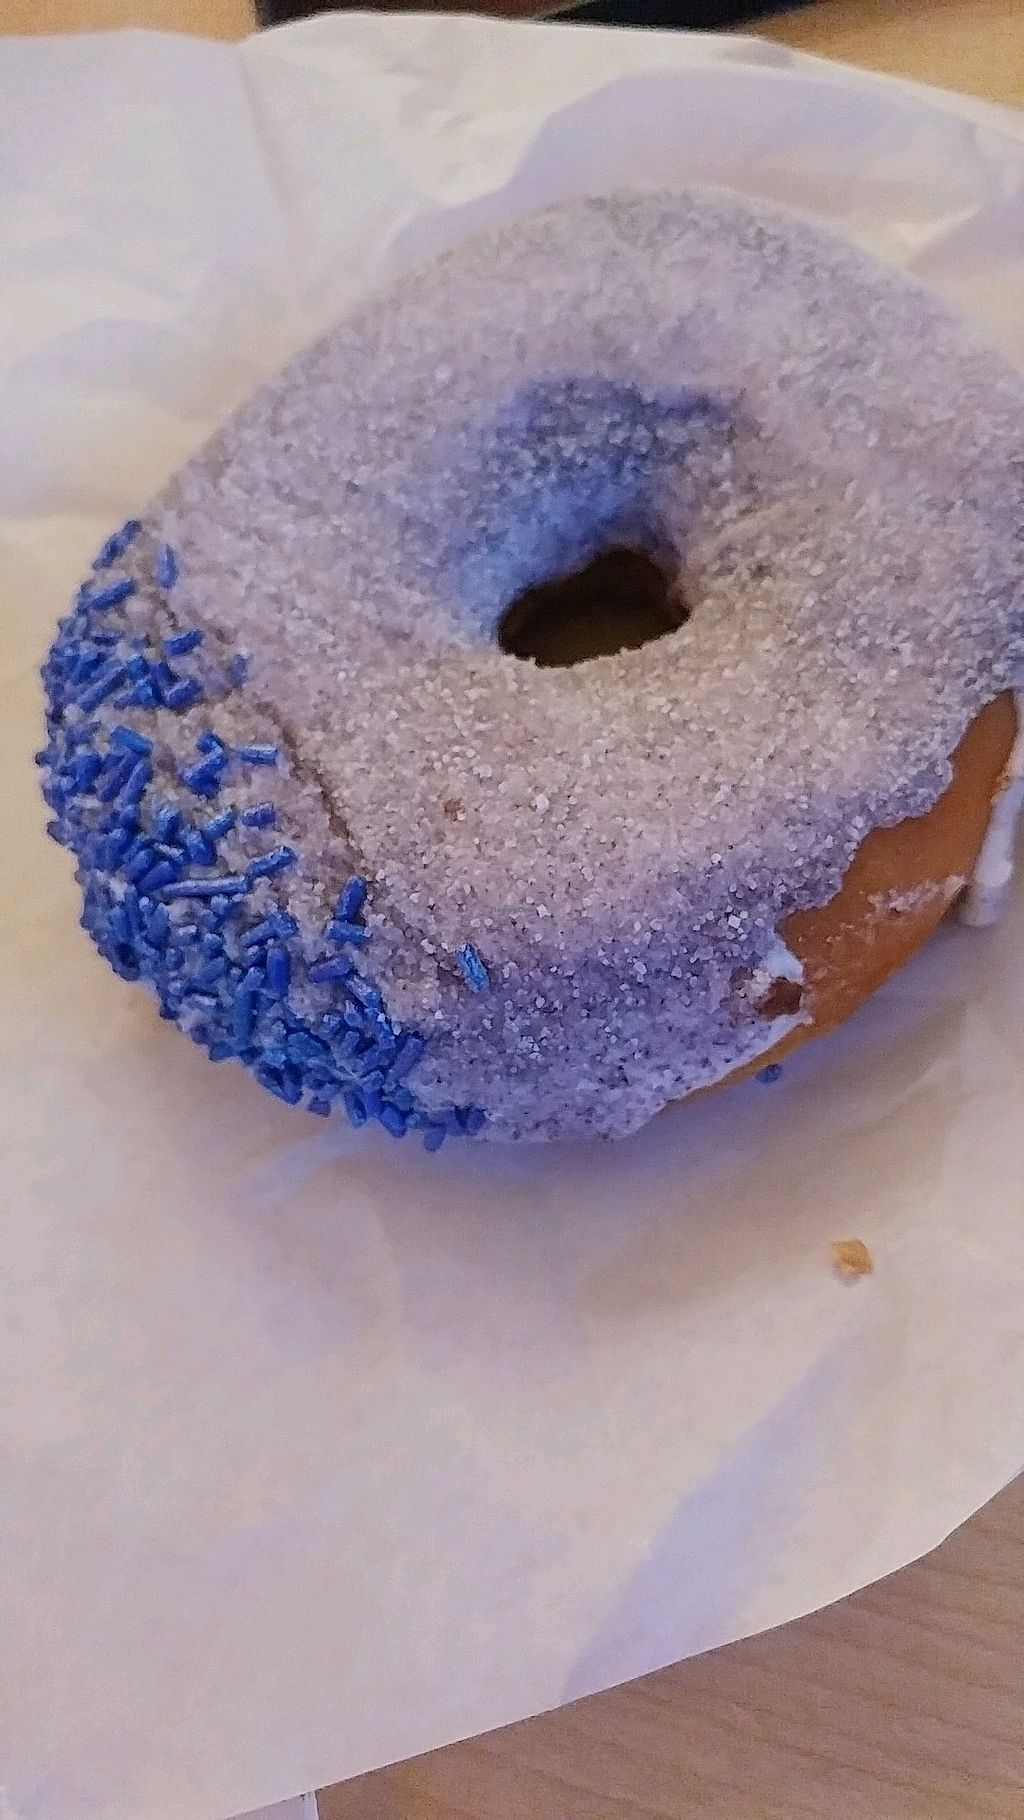 """Photo of Voodoo Doughnut  by <a href=""""/members/profile/krimaro"""">krimaro</a> <br/>Grape <br/> April 8, 2018  - <a href='/contact/abuse/image/33103/382392'>Report</a>"""